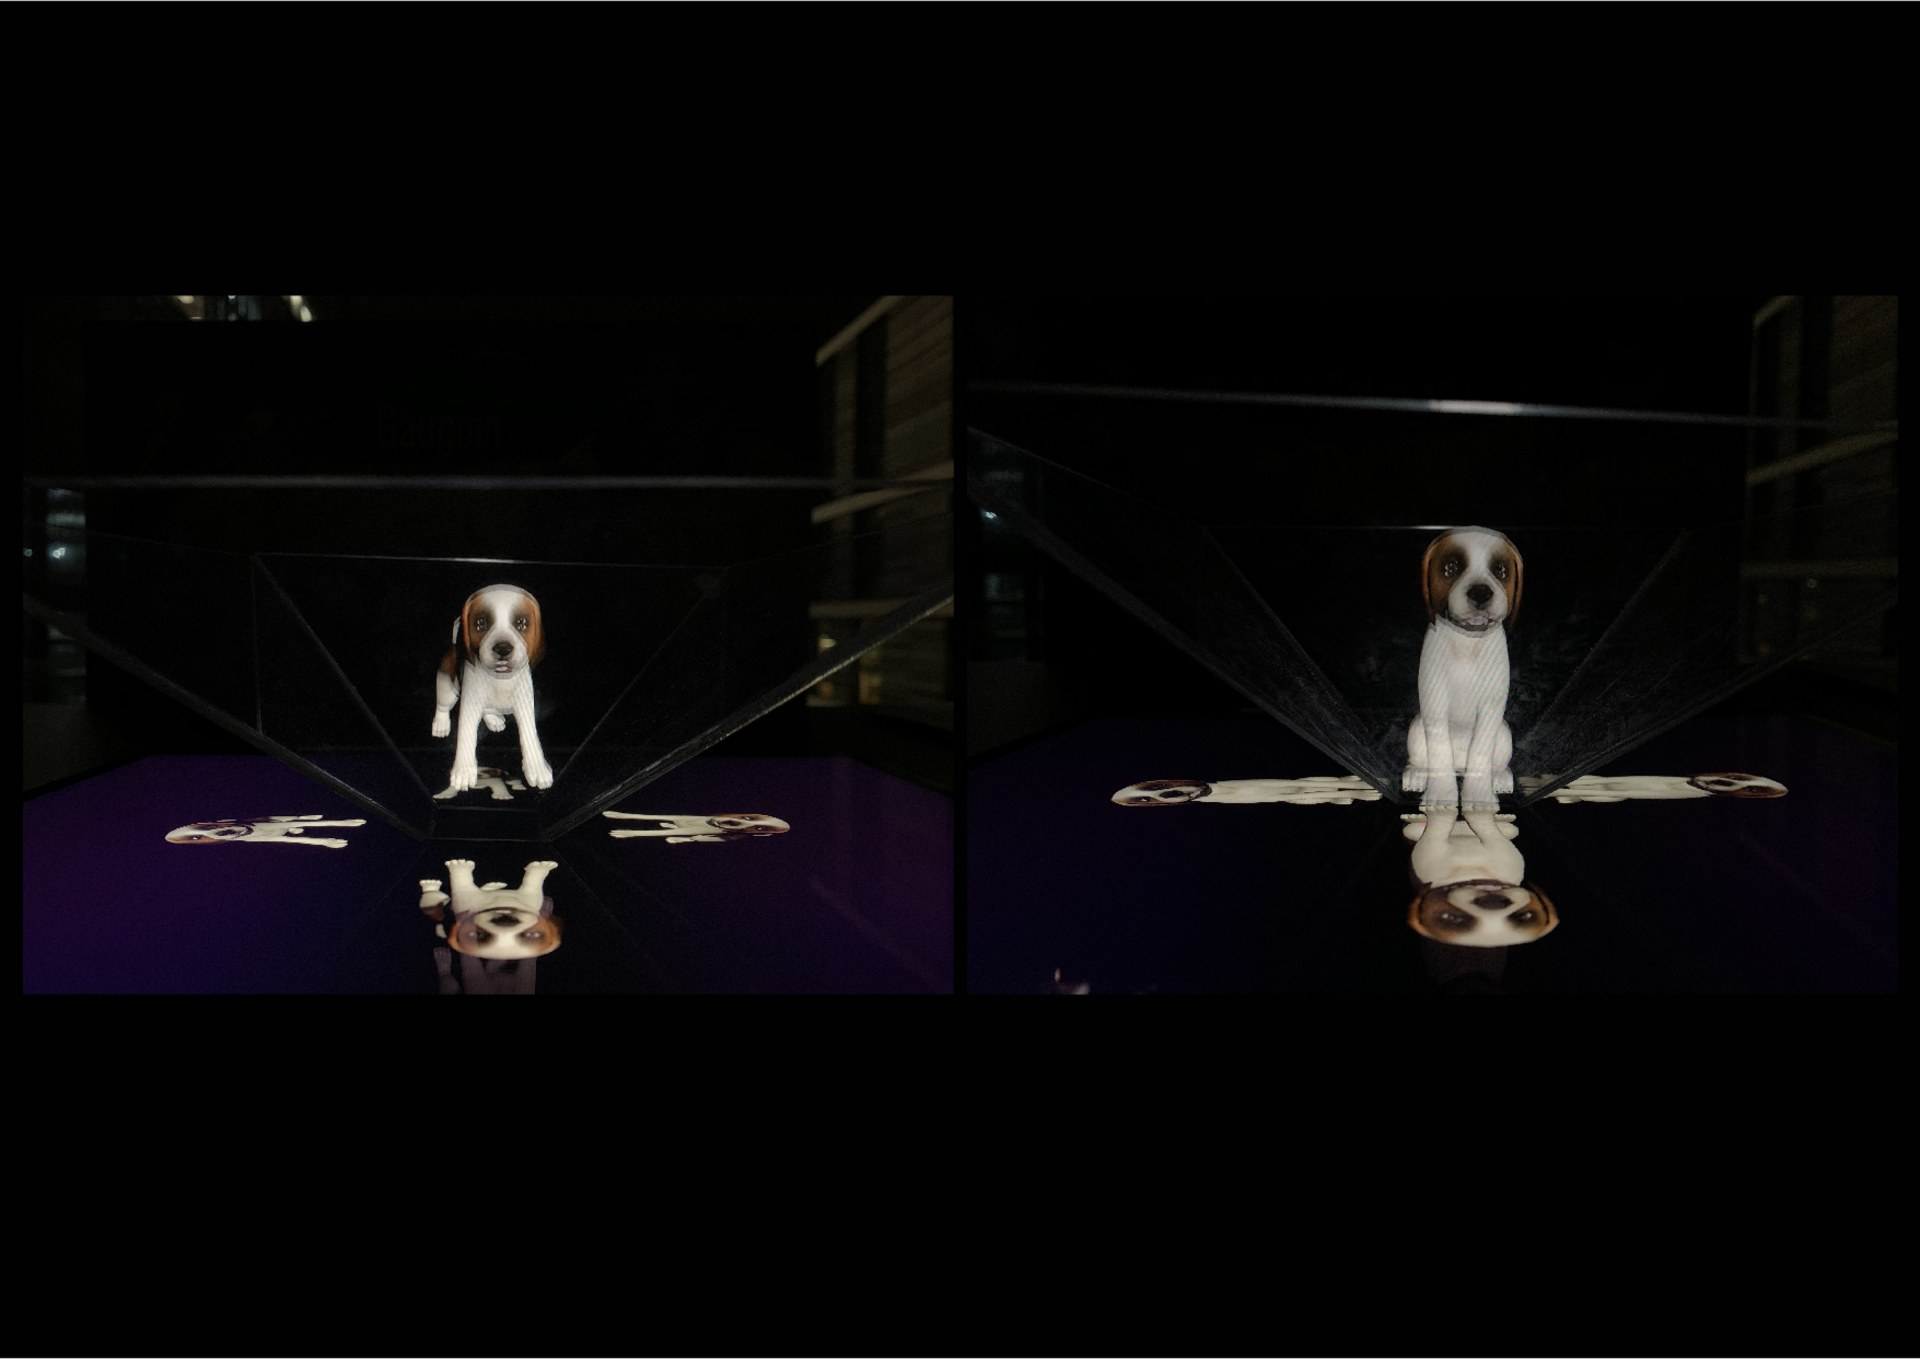 Refine the projector with dog animation